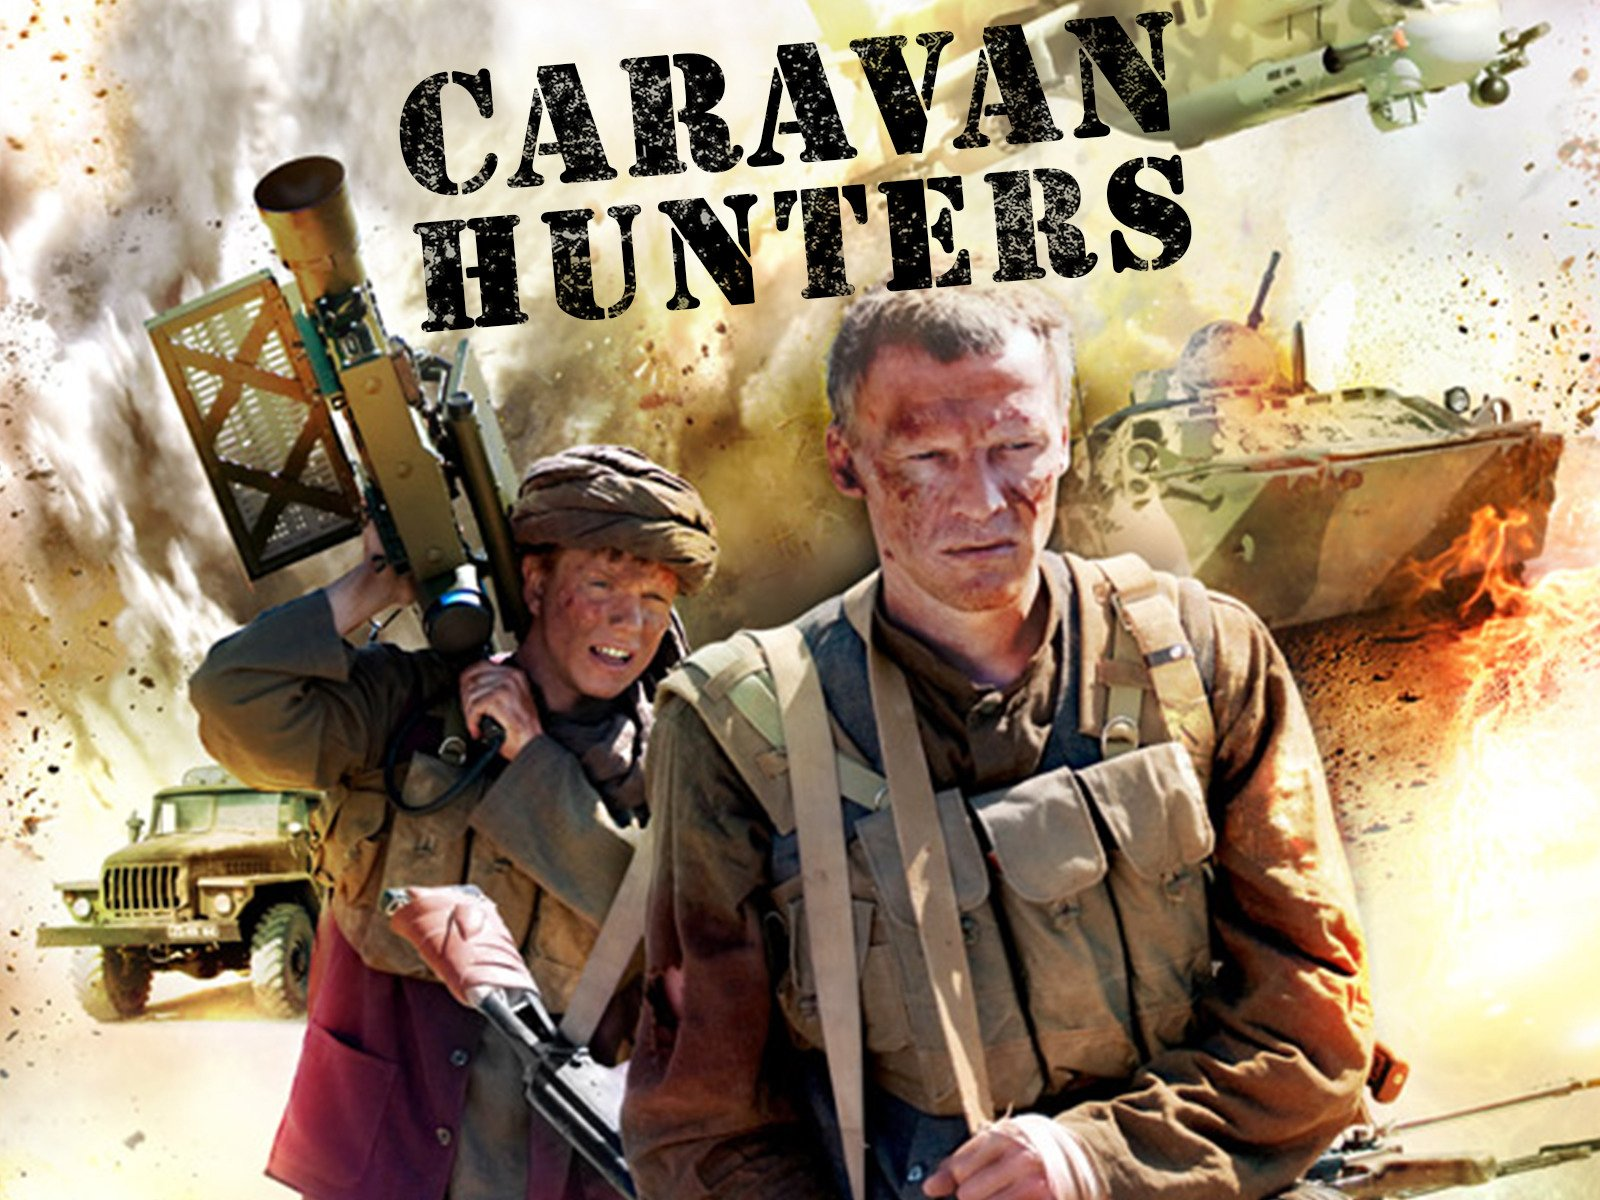 Caravan Hunters – Episode 4